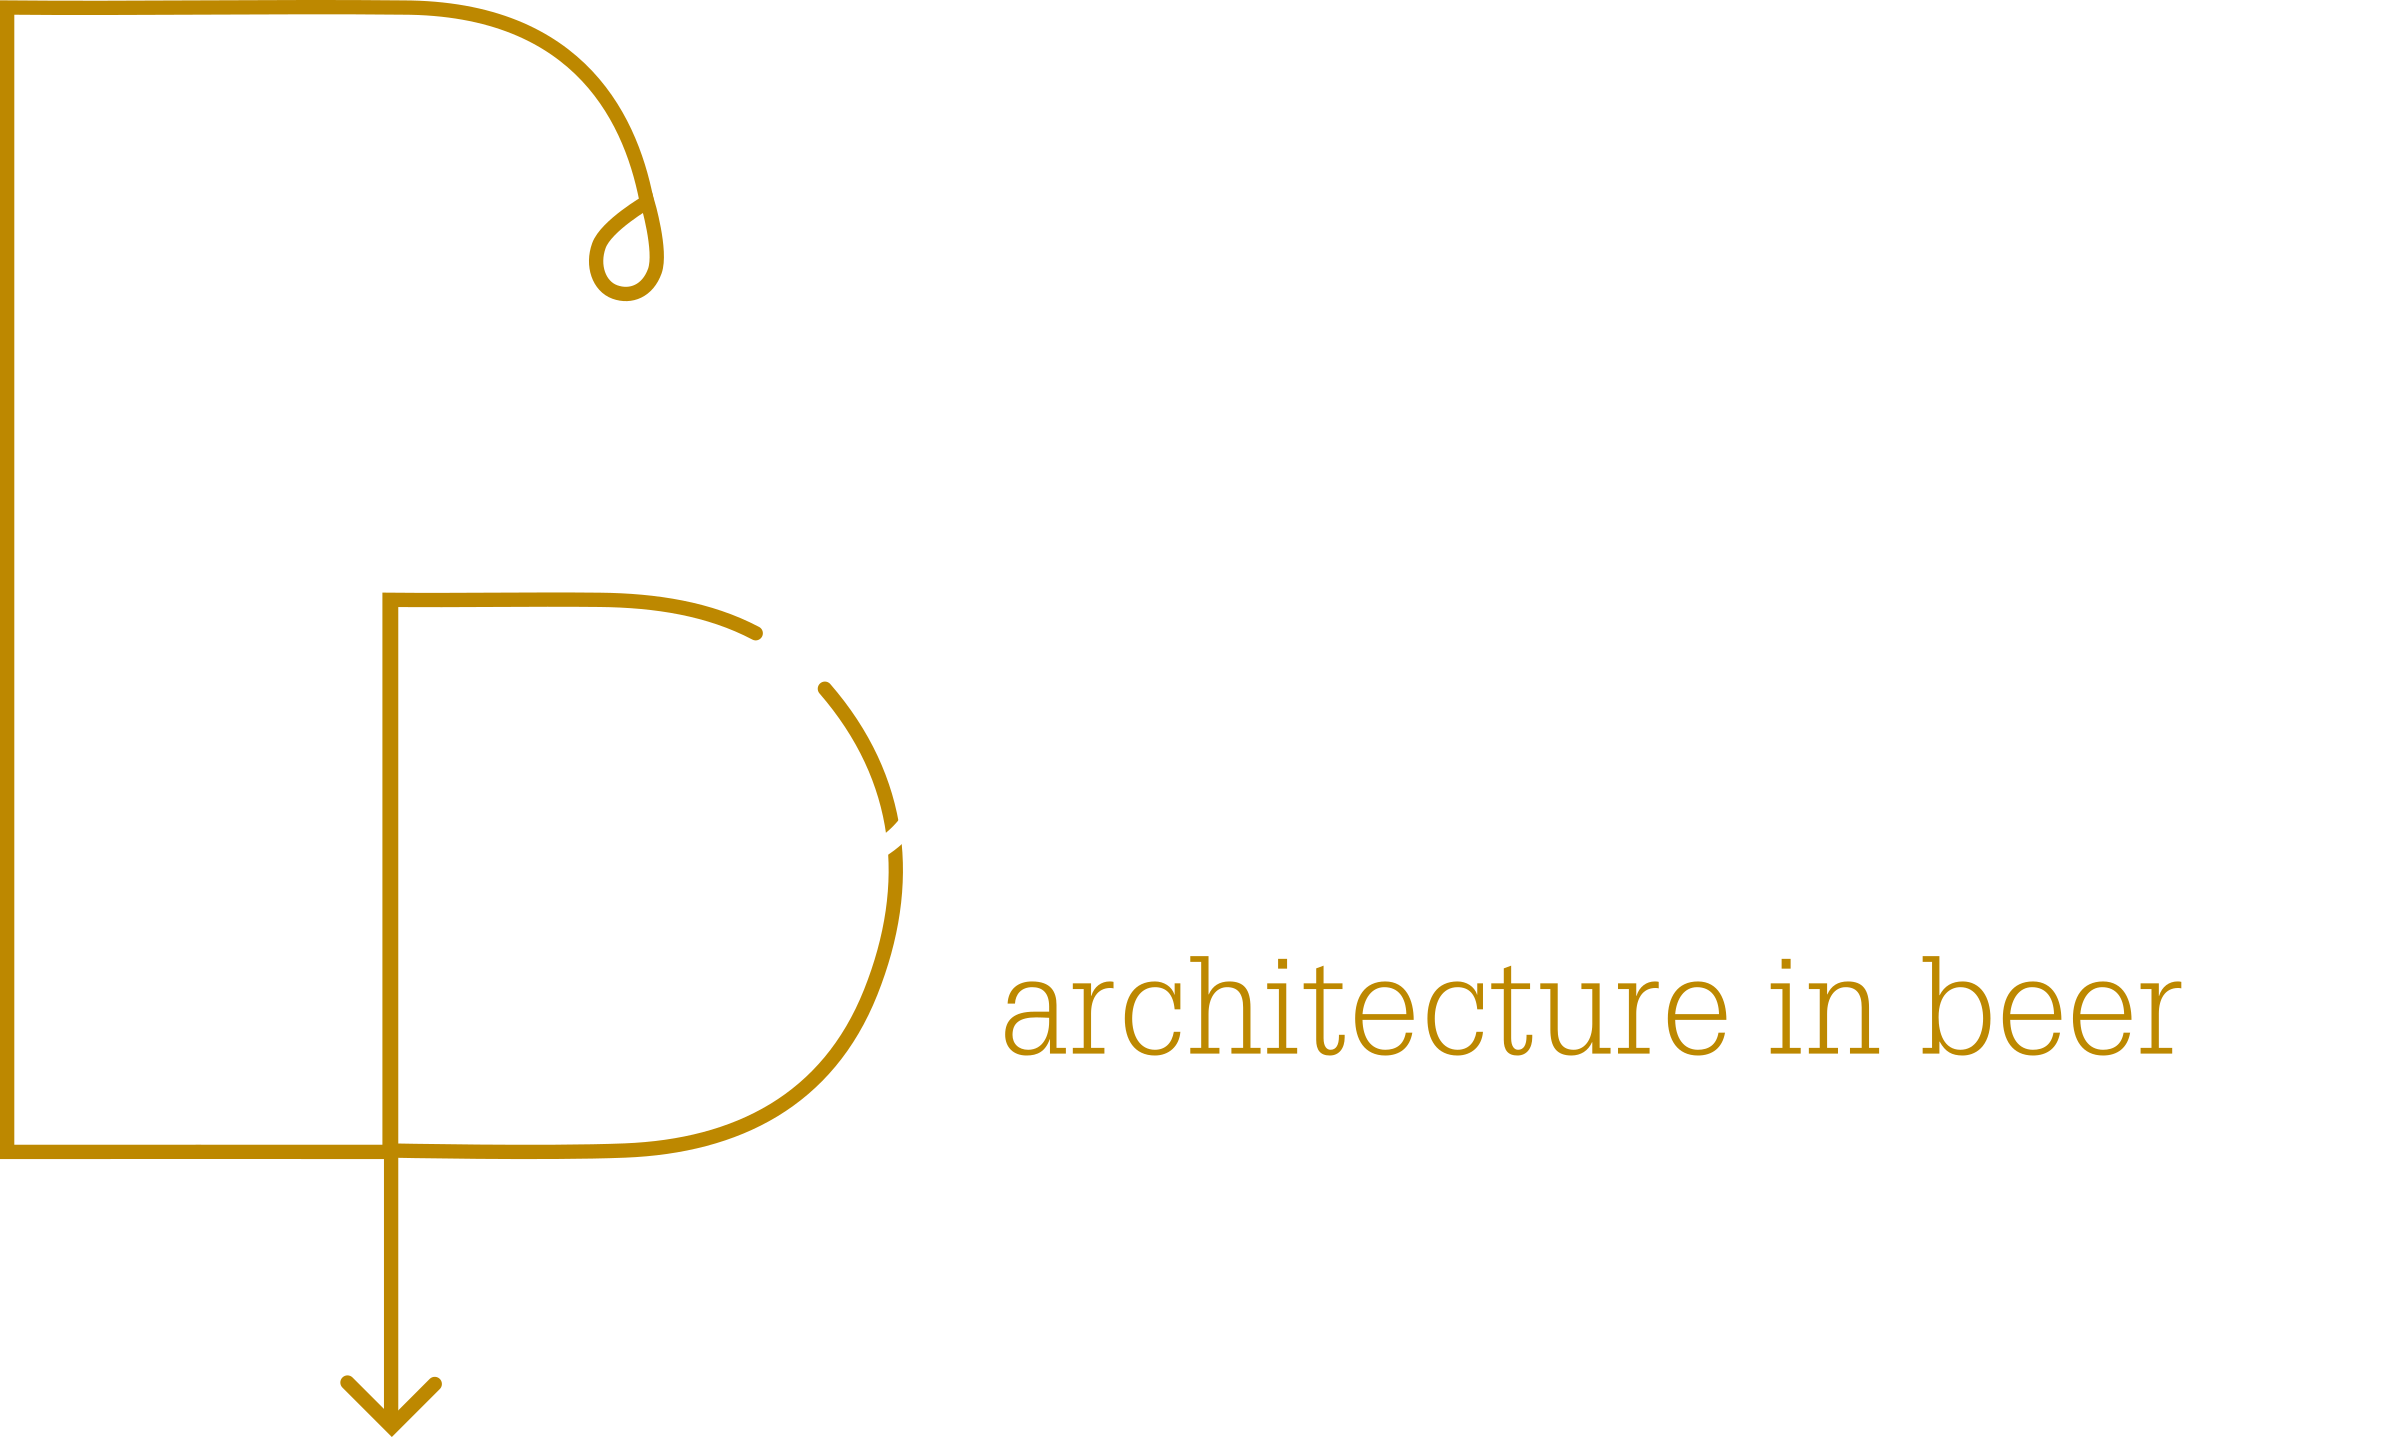 De Proefbrouwerij - architecture in beer